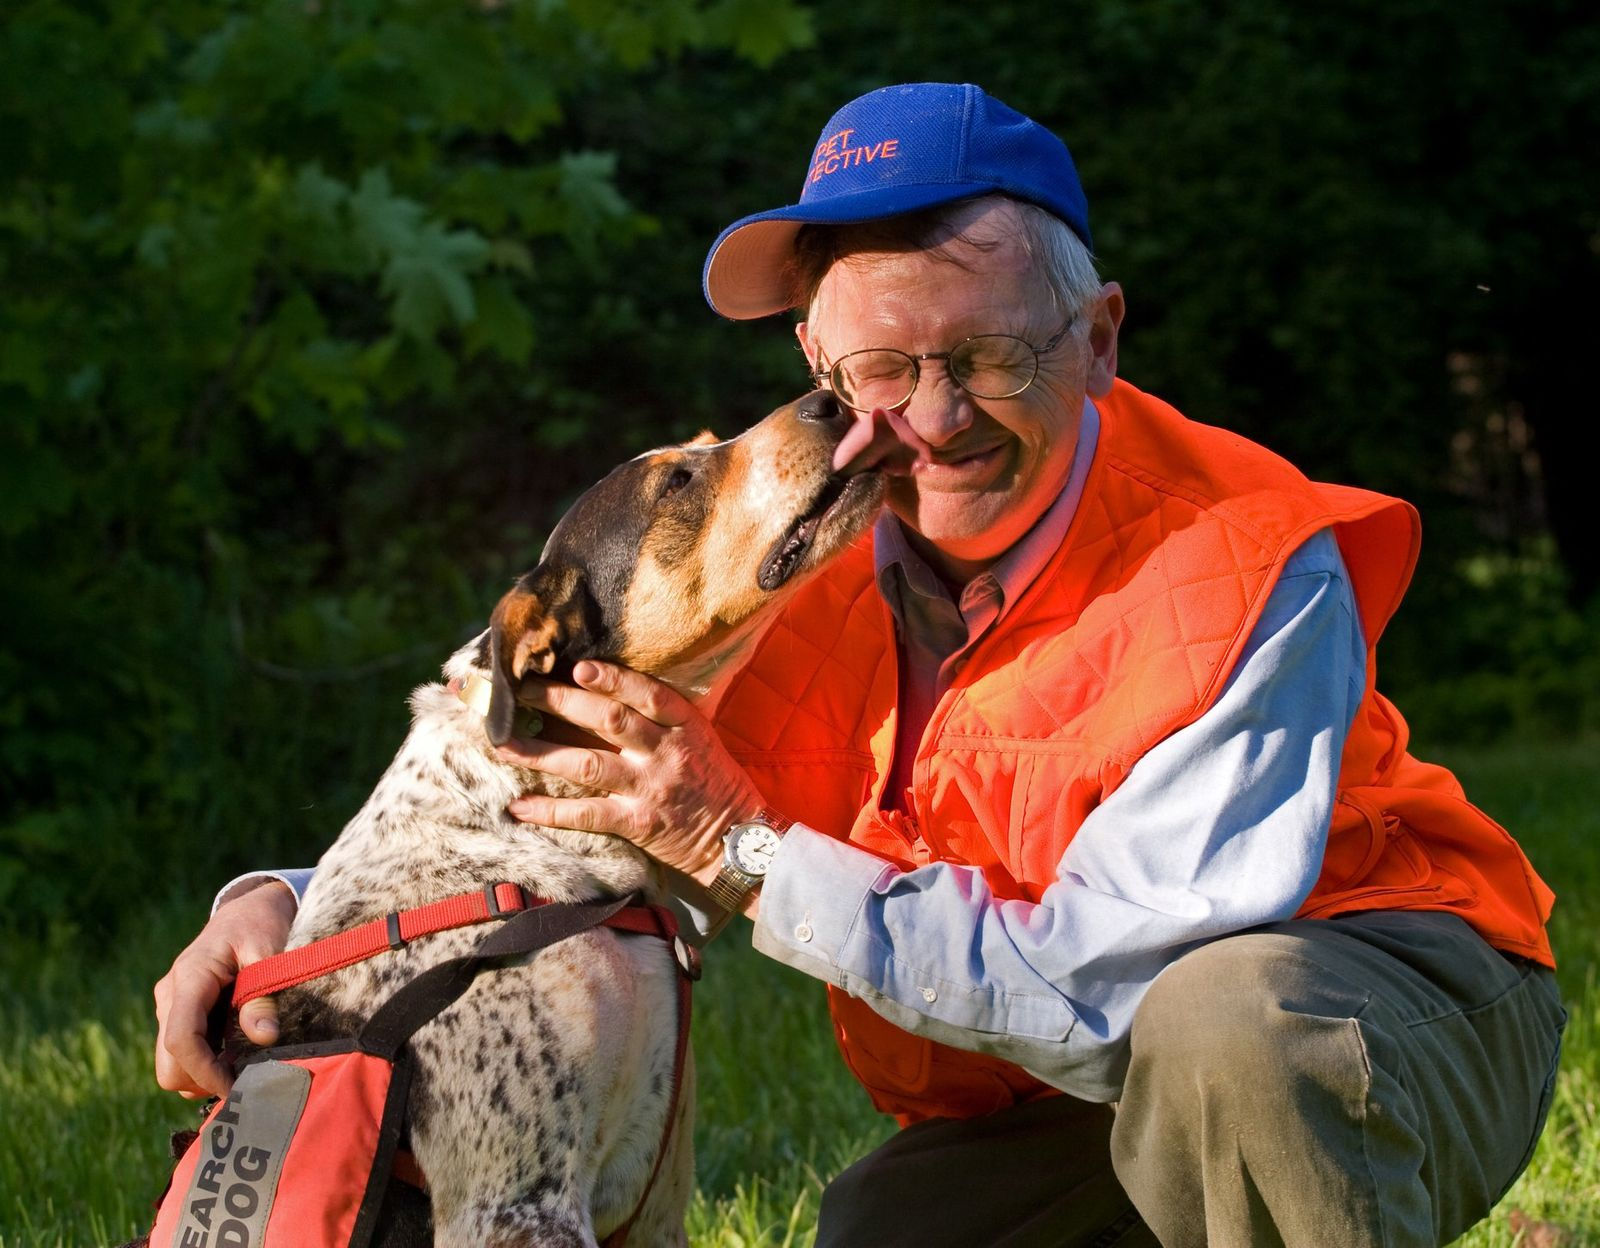 Local Search Dog, a hero who helped in over 500 searches for lost pets, has passed away (Pet Search And Rescue)